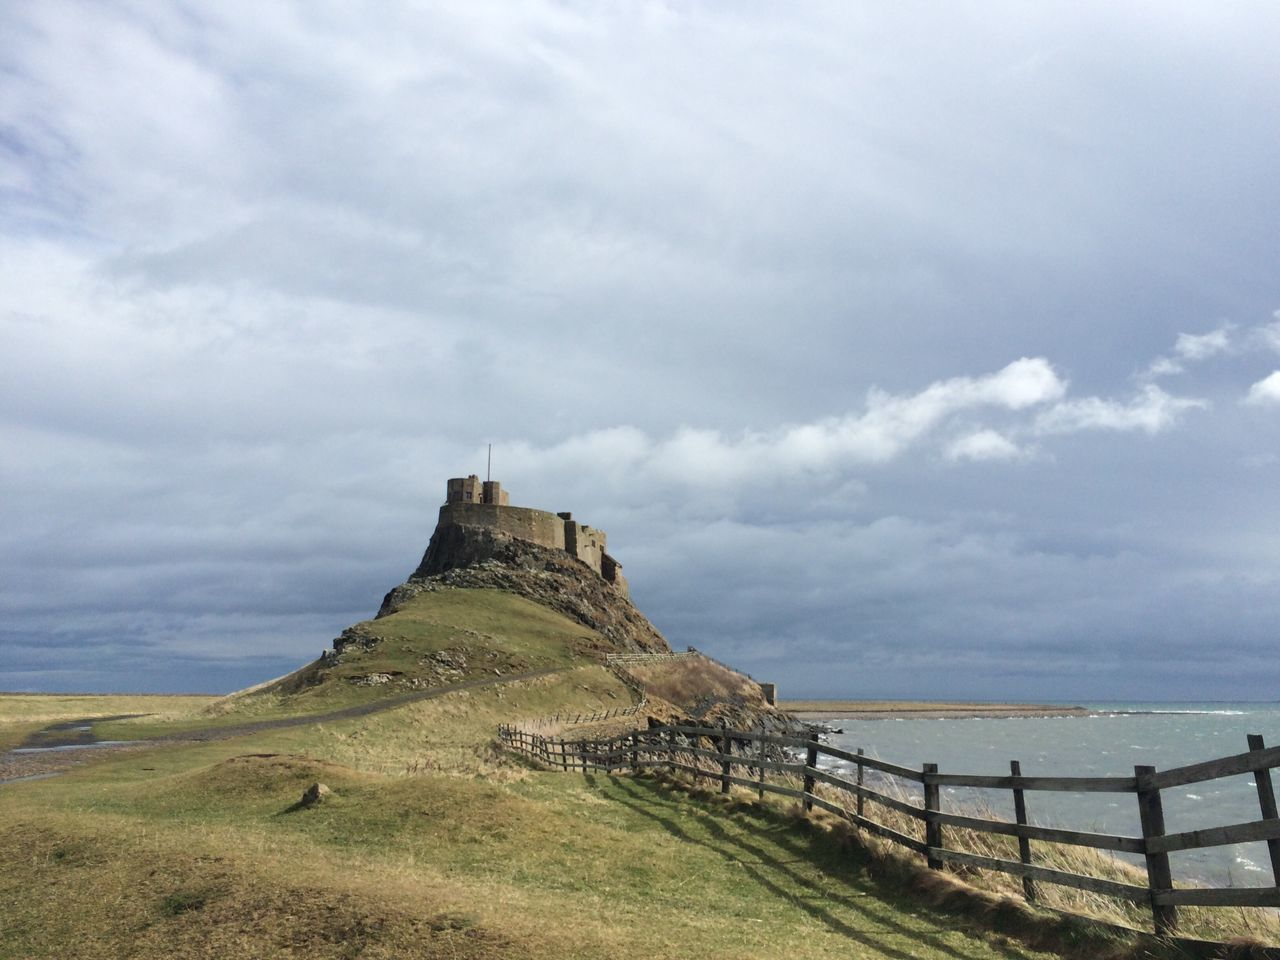 Holy Island Castle Ruin Ruins Fence Cloud Rugged Nature Natural Beauty Coast Sea Original No Filter Northumberland Fine Art Photography On The Way Lindisfarne Adventure Club Showcase July Hidden Gems  Pivotal Ideas